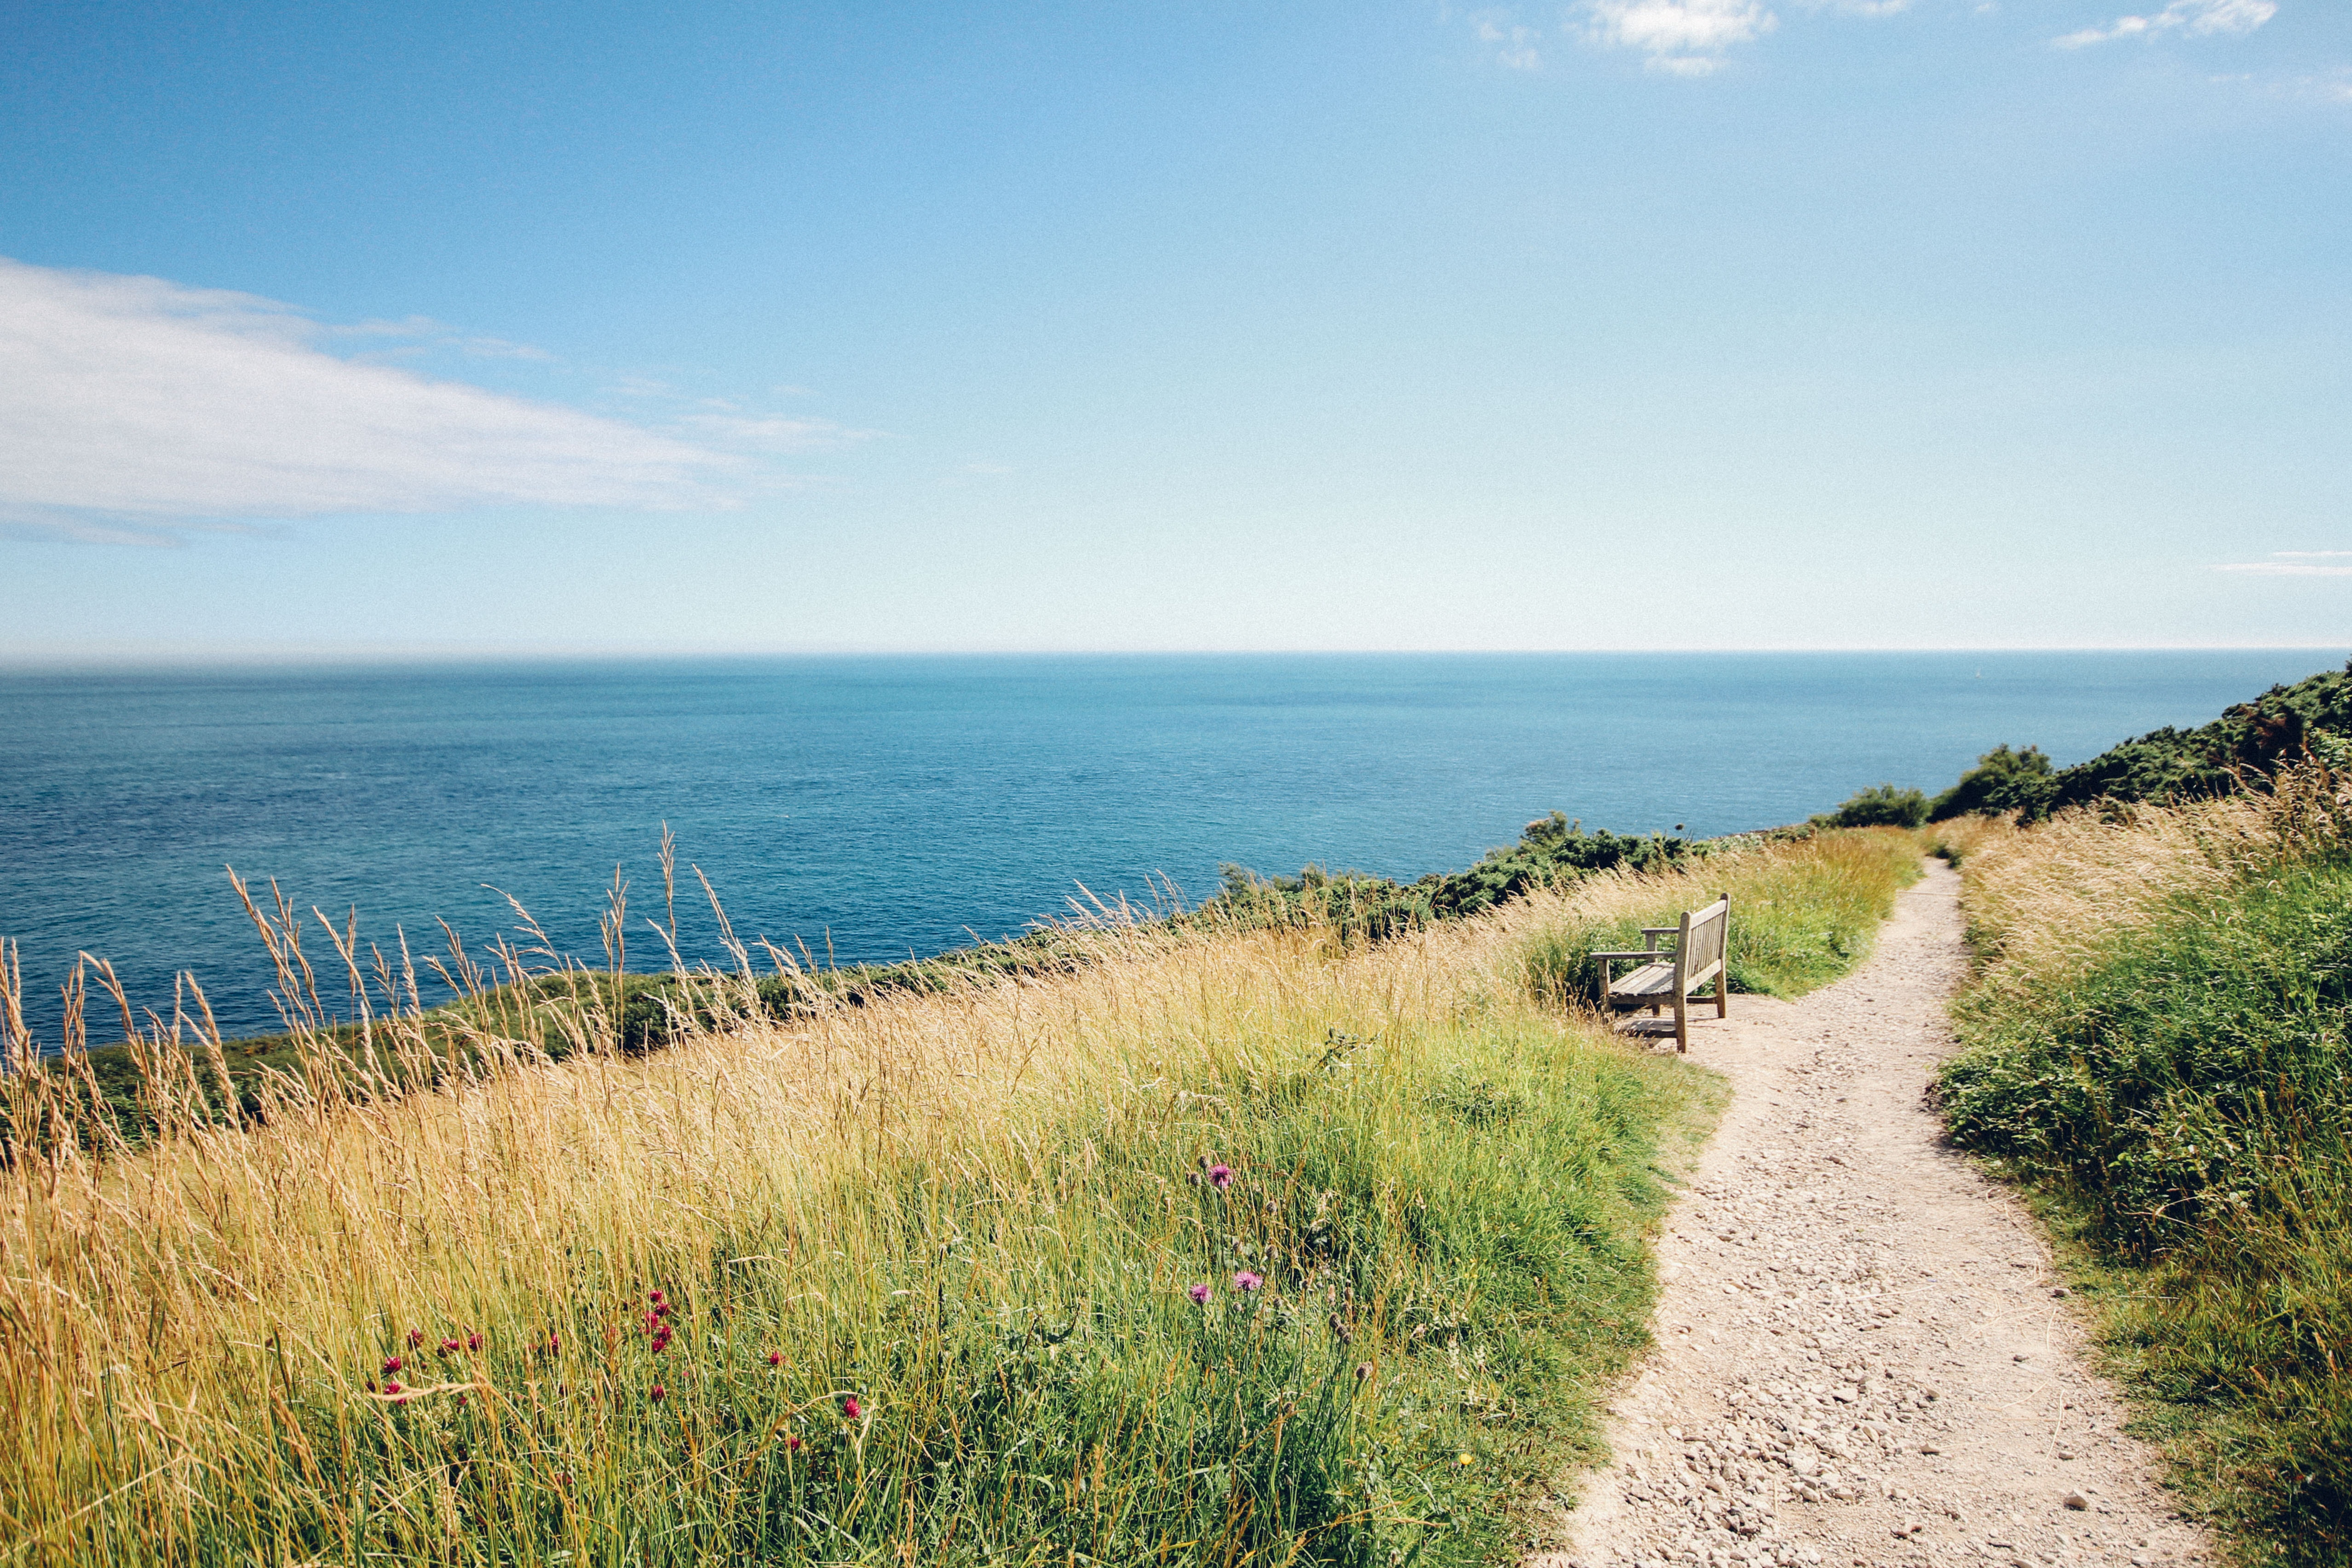 Path on the sea, tha atlas of paths, Photo by Rachel Lees via Unsplash